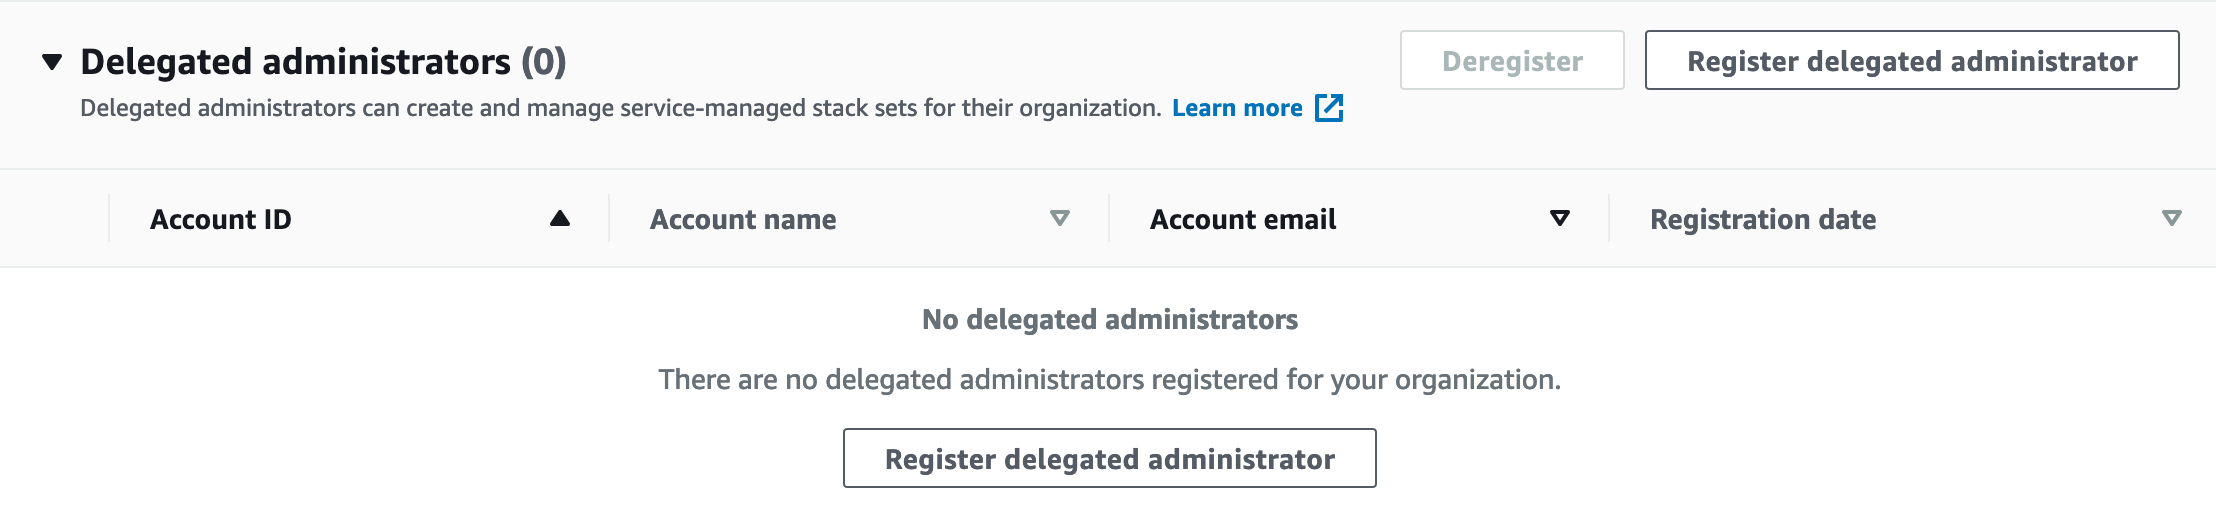 Shows a portion of the delegated administrators web page